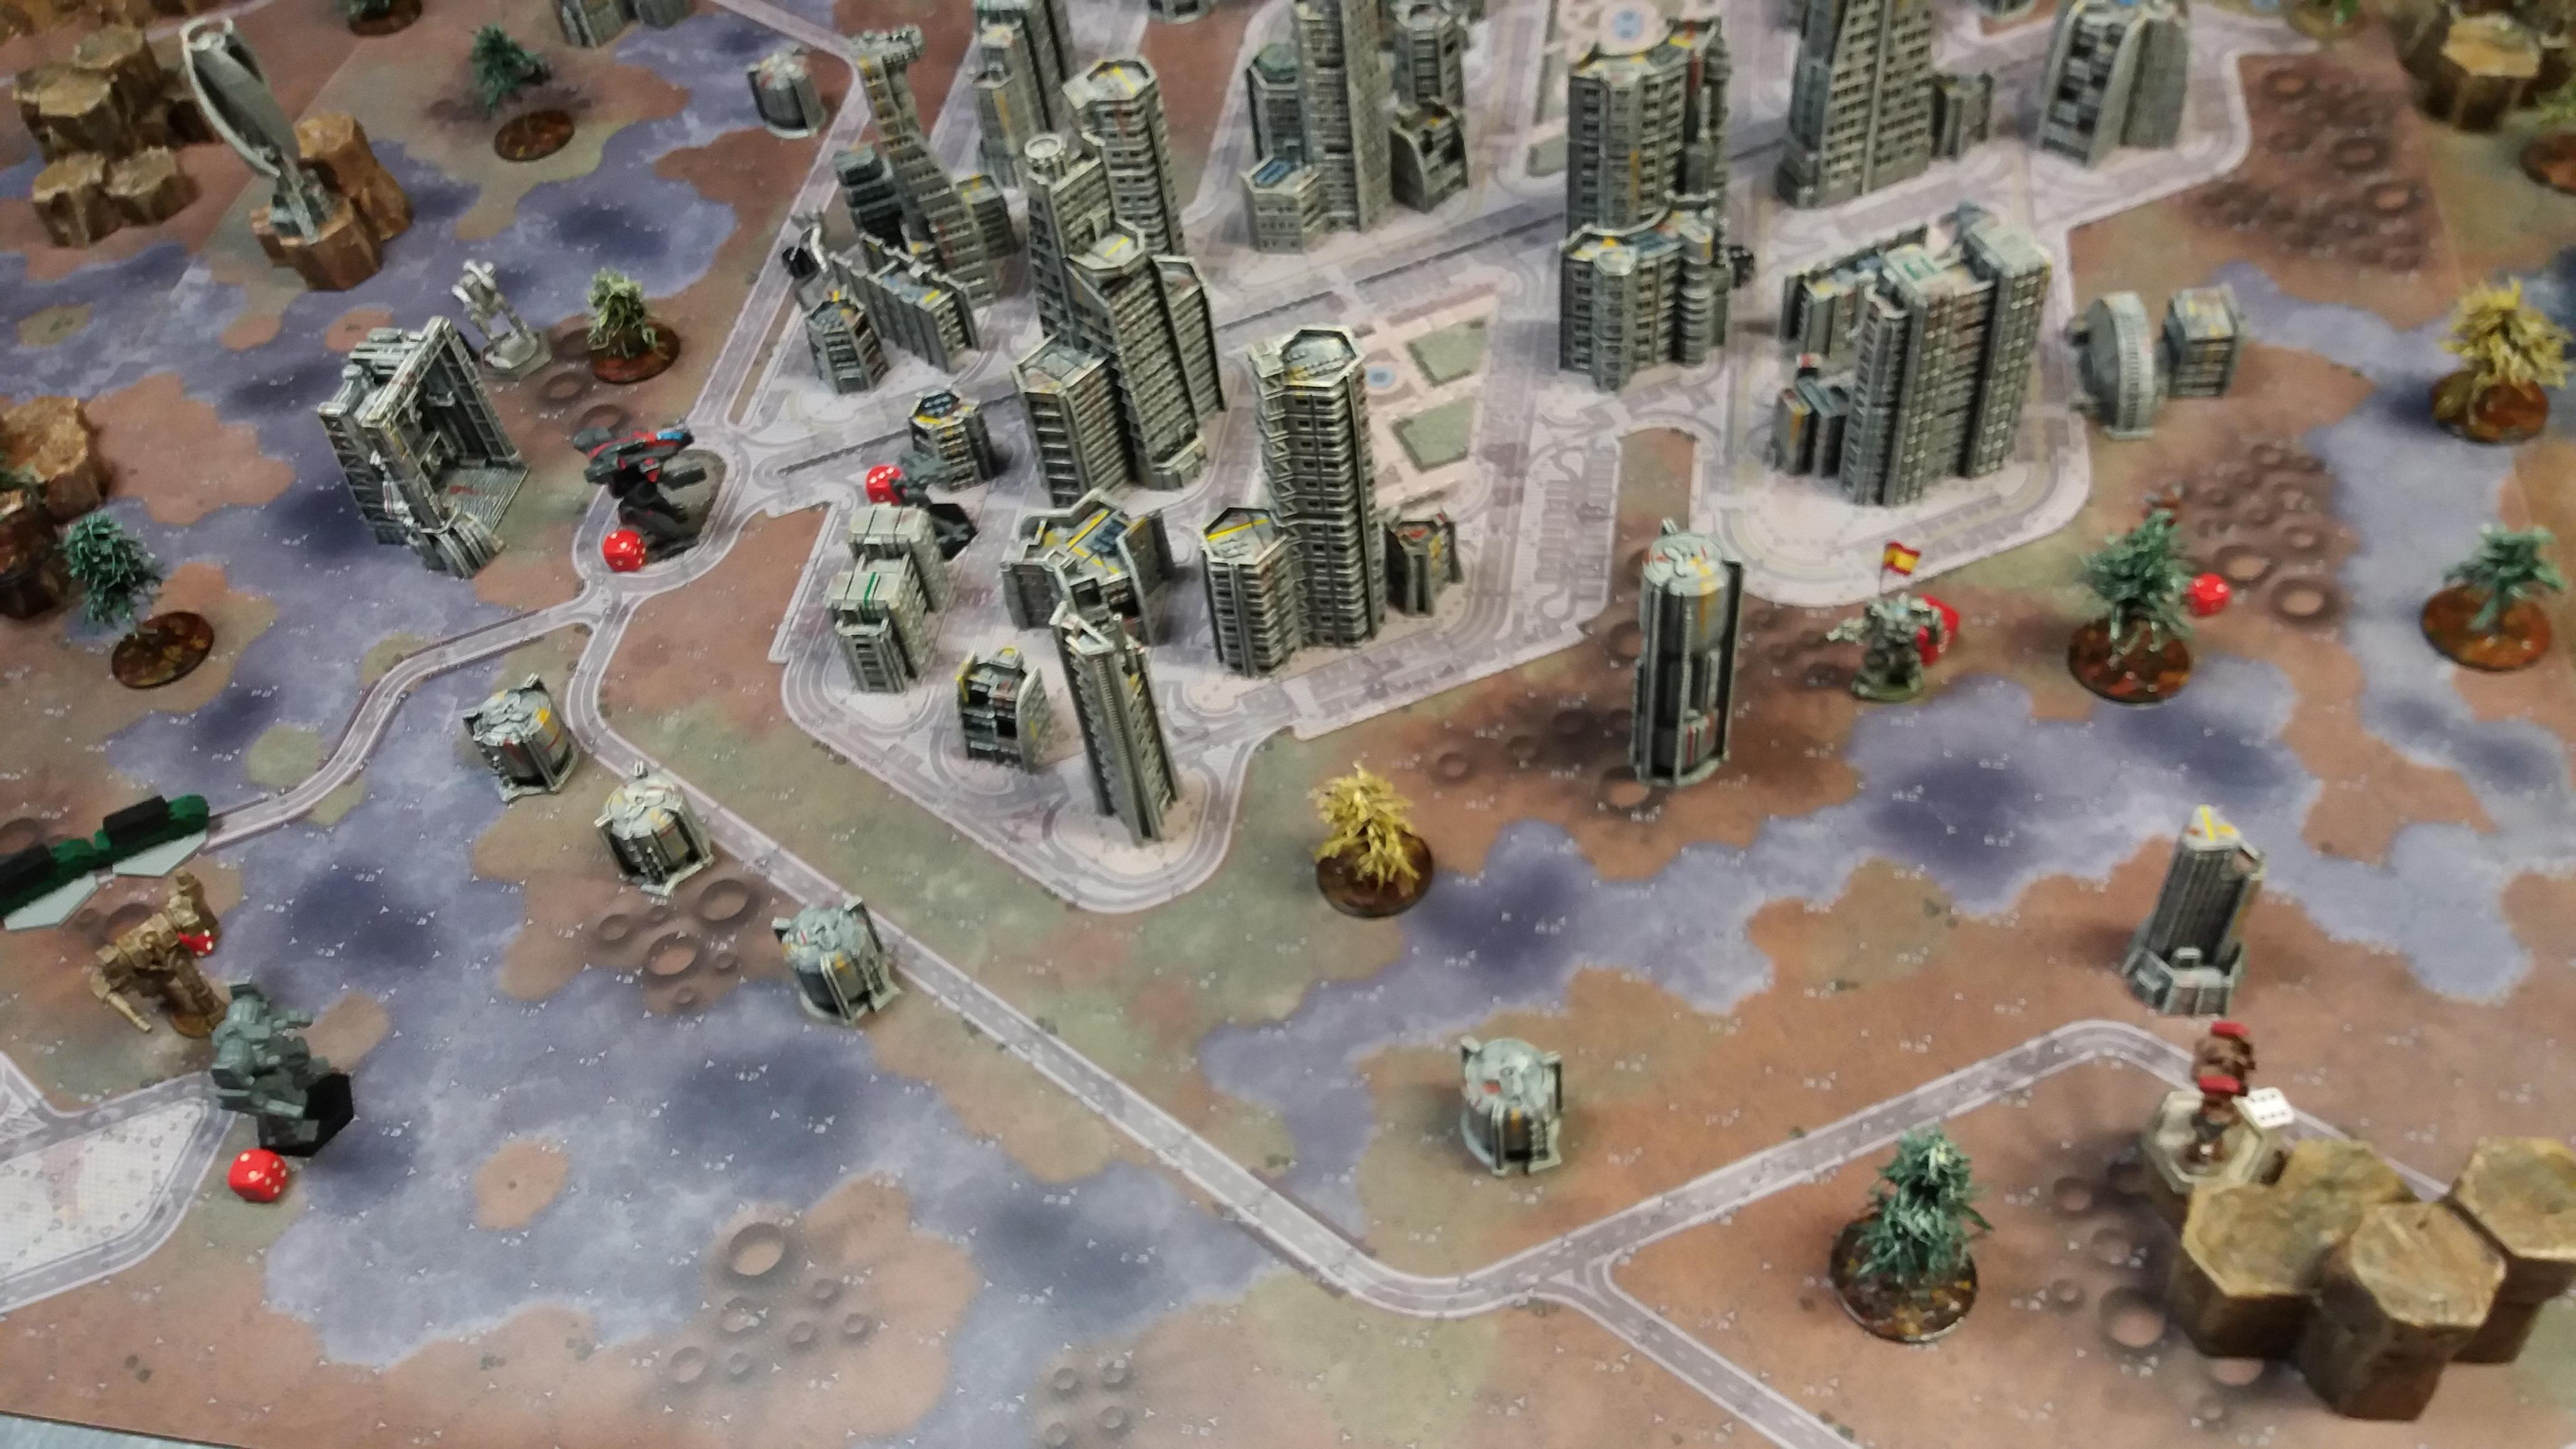 Battletech, City, Hex, Mech, Mechwarrior, Tabletop, Terrain, Terrain